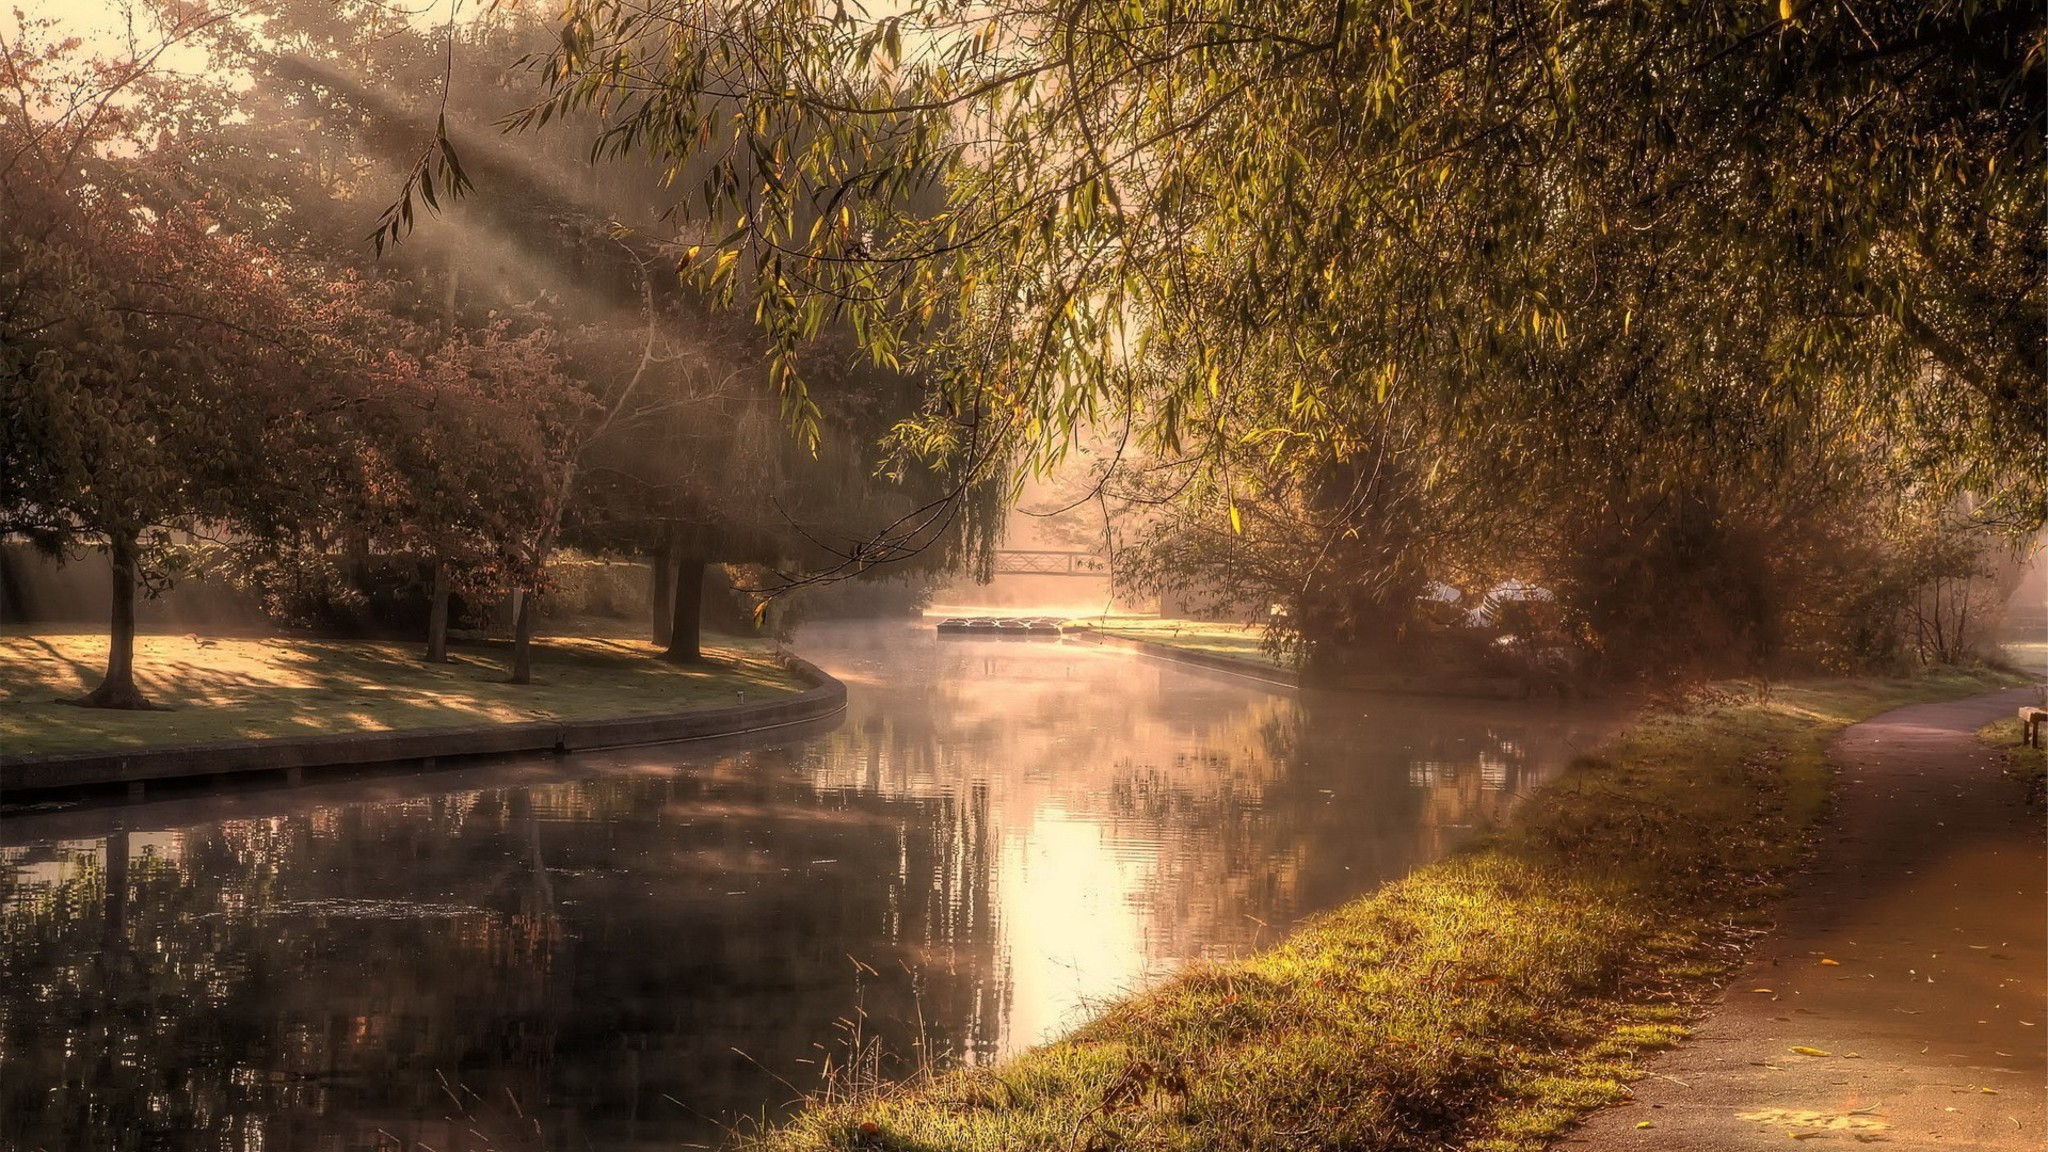 Best Iphone 5 Home Screen Wallpapers River In A Park At Morning Mist Wallpaper Allwallpaper